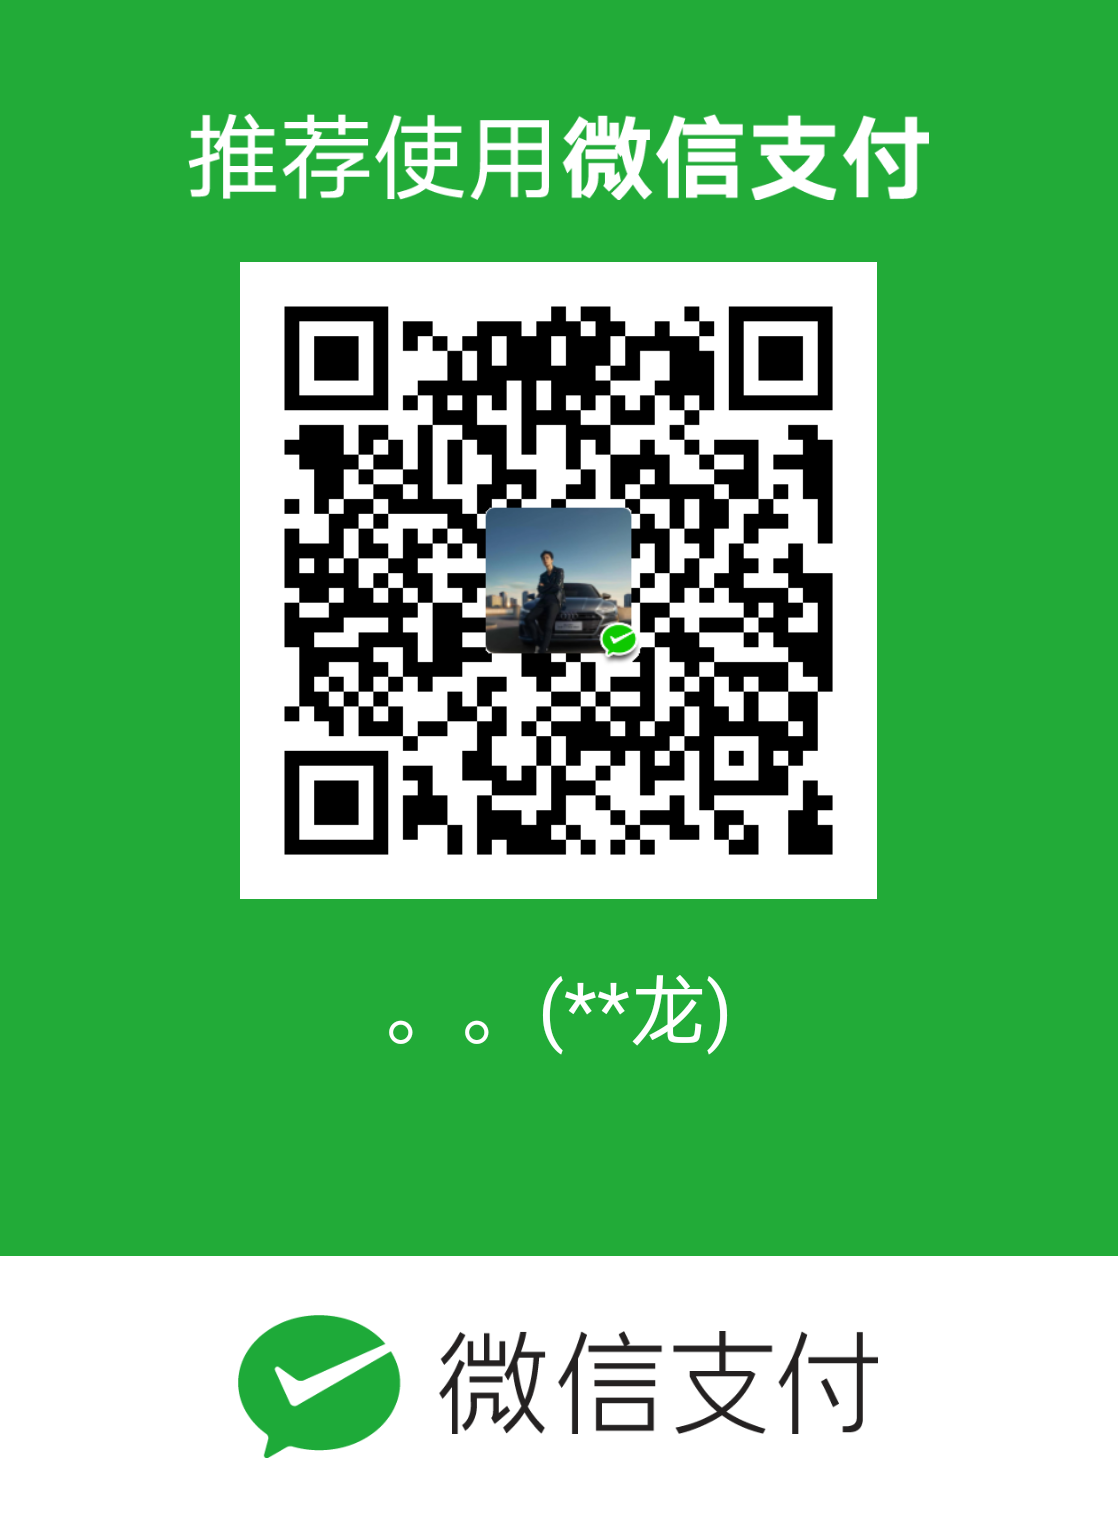 mm_facetoface_collect_qrcode_1610644570205.png